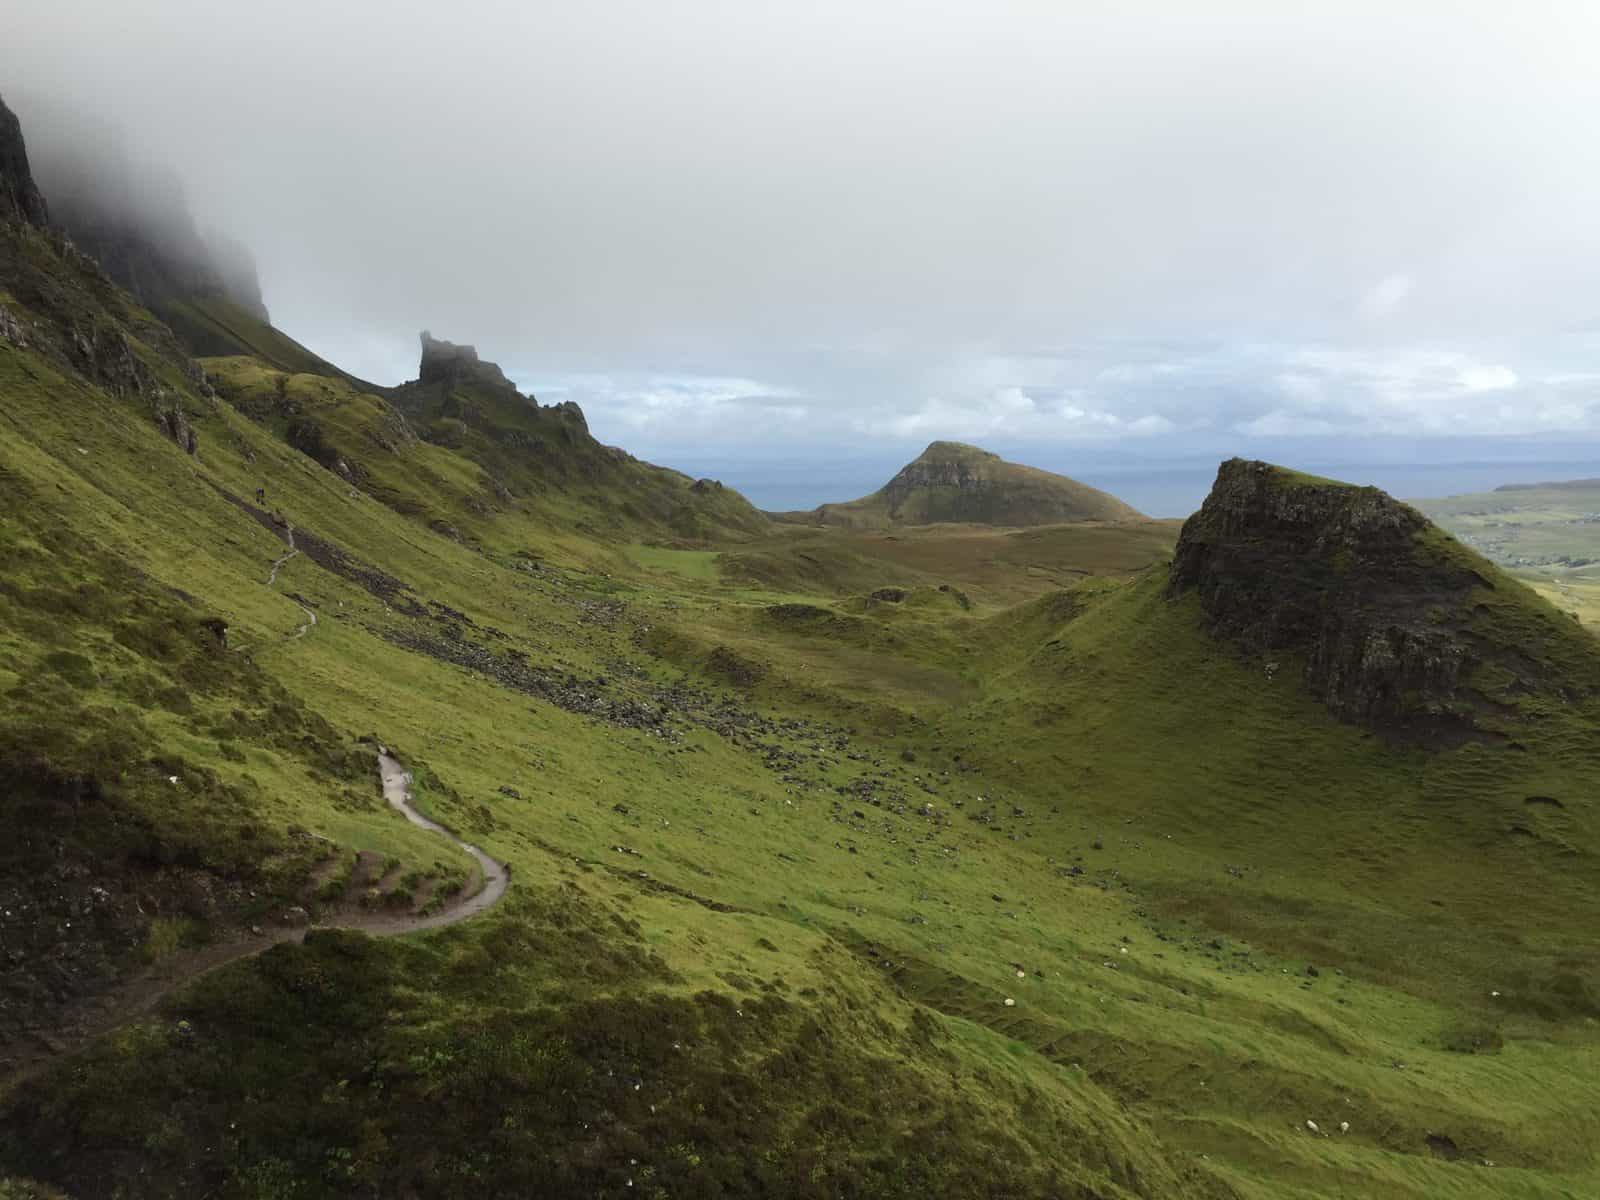 19 of the best places to visit in Scotland - hiking the Quiraing